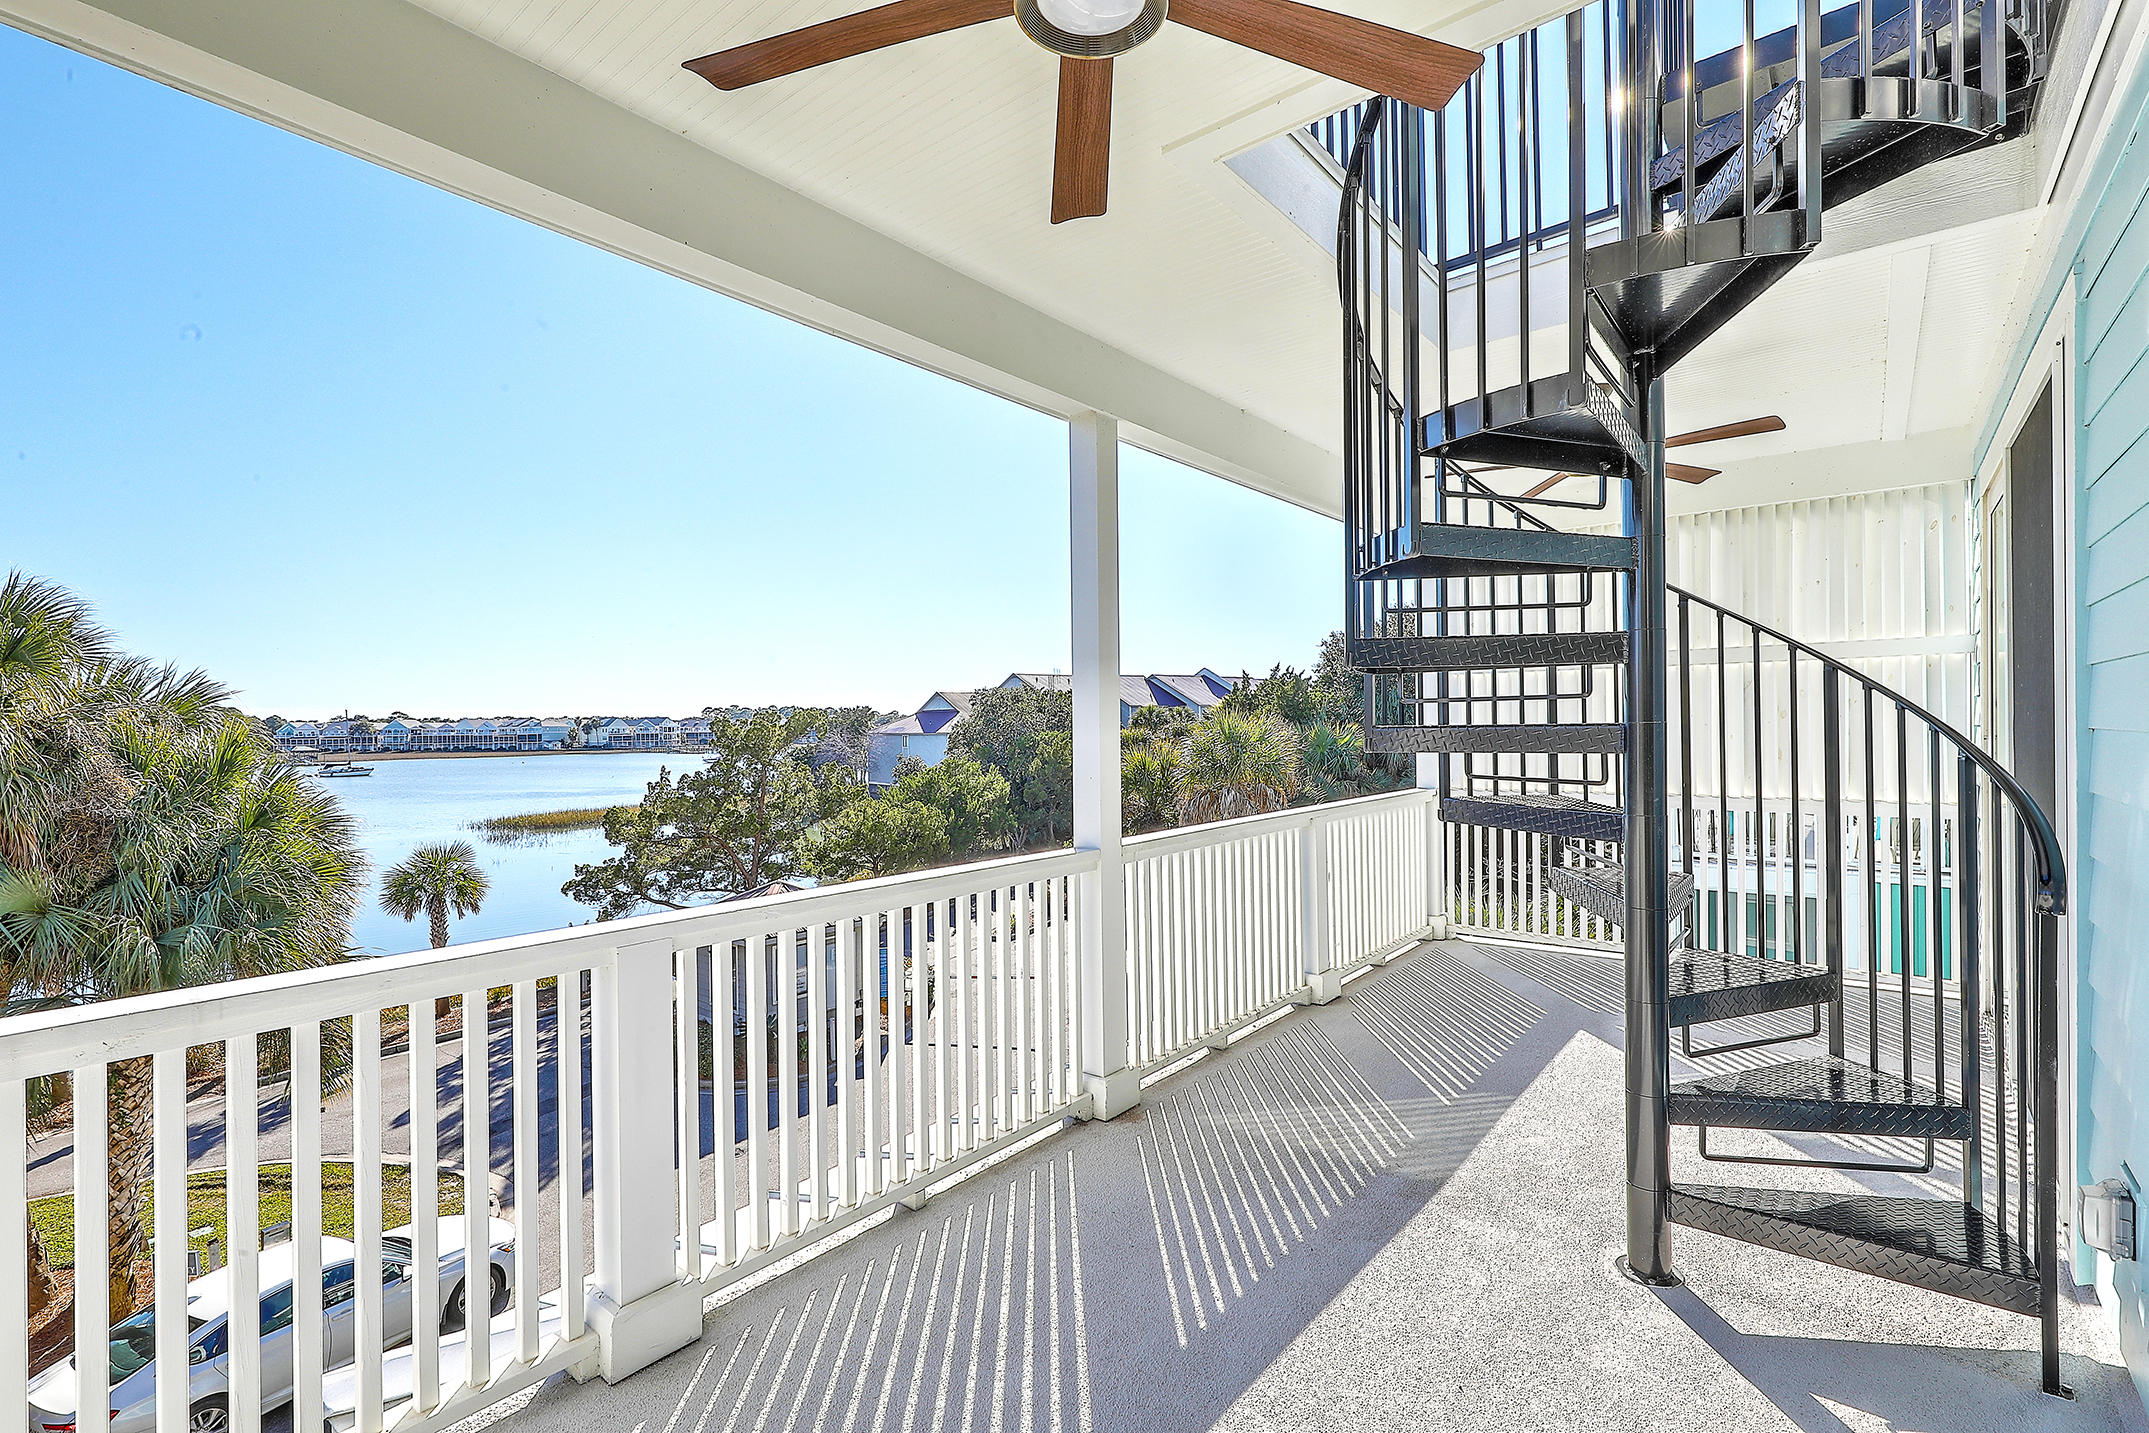 Mariners Cay Homes For Sale - 1002 Mariners Cay, Folly Beach, SC - 17